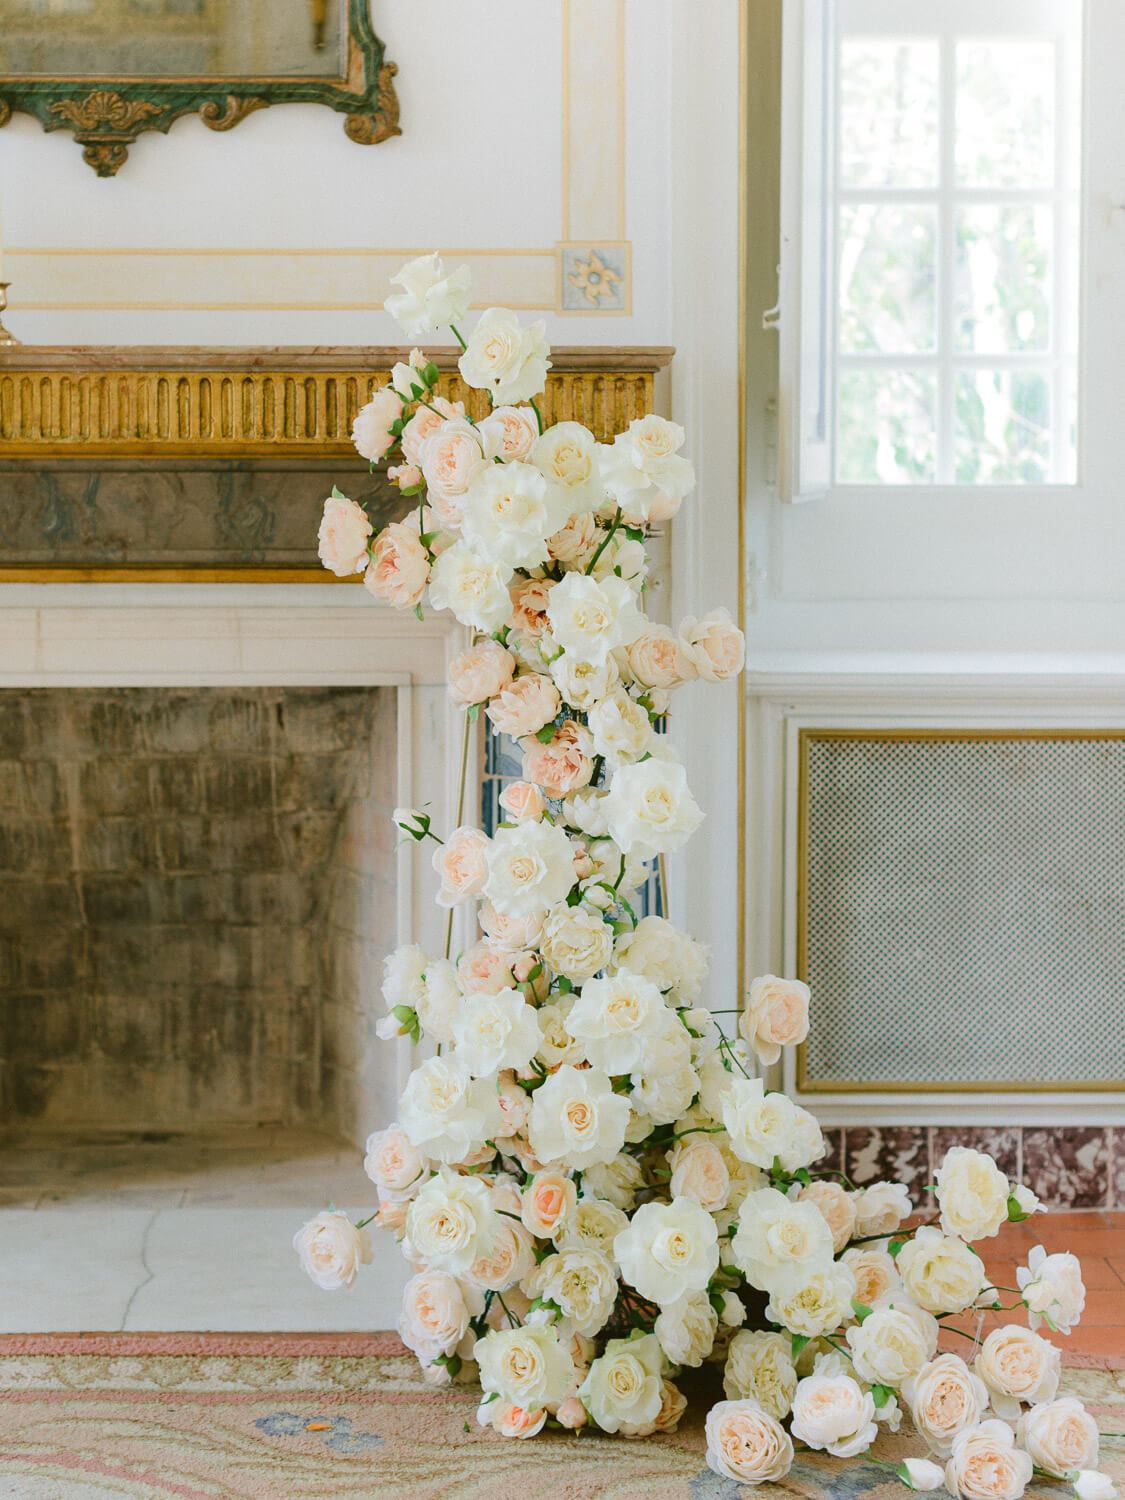 white and coral cascading floral decor on mantlepiece photographed by Portugal Wedding Photographer